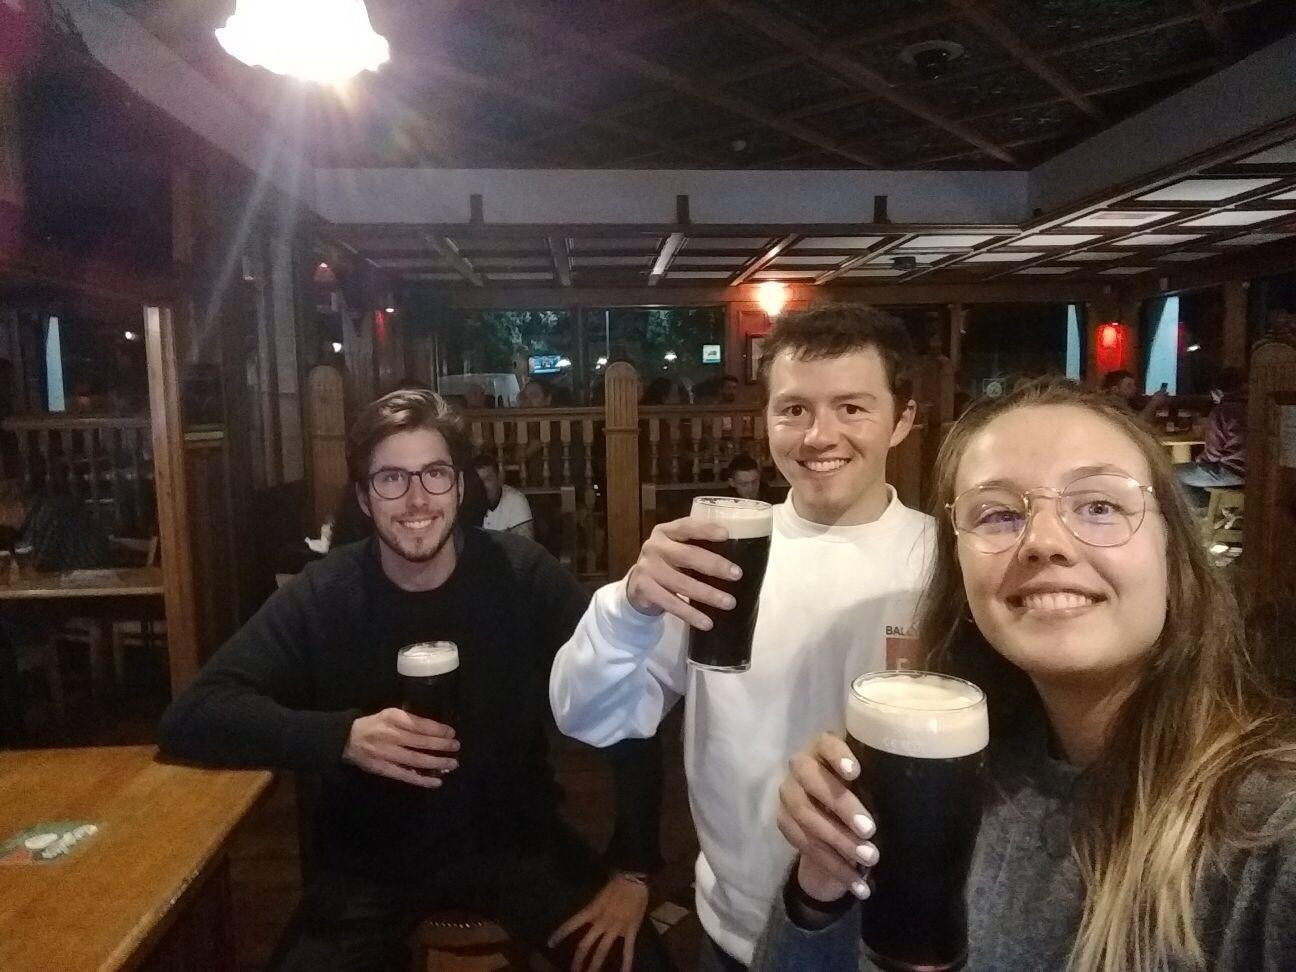 Jorge, Anton and Laura enjoying some Dublin refreshments